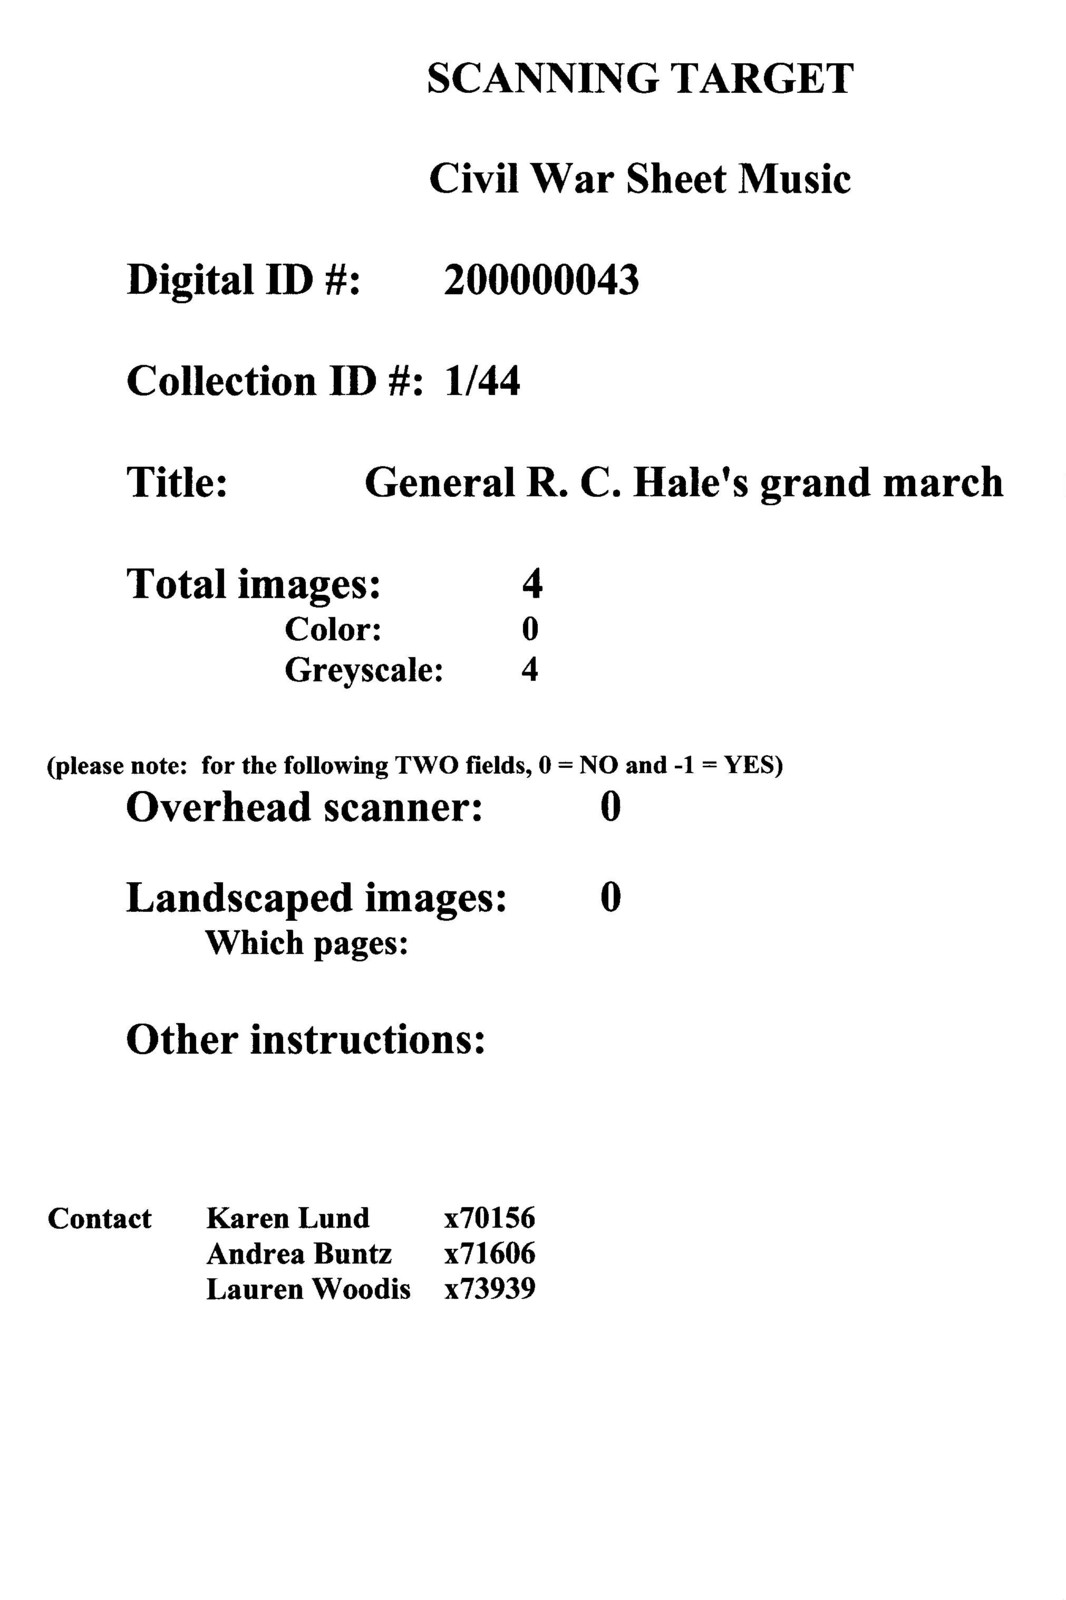 General R. C. Hale's grand march